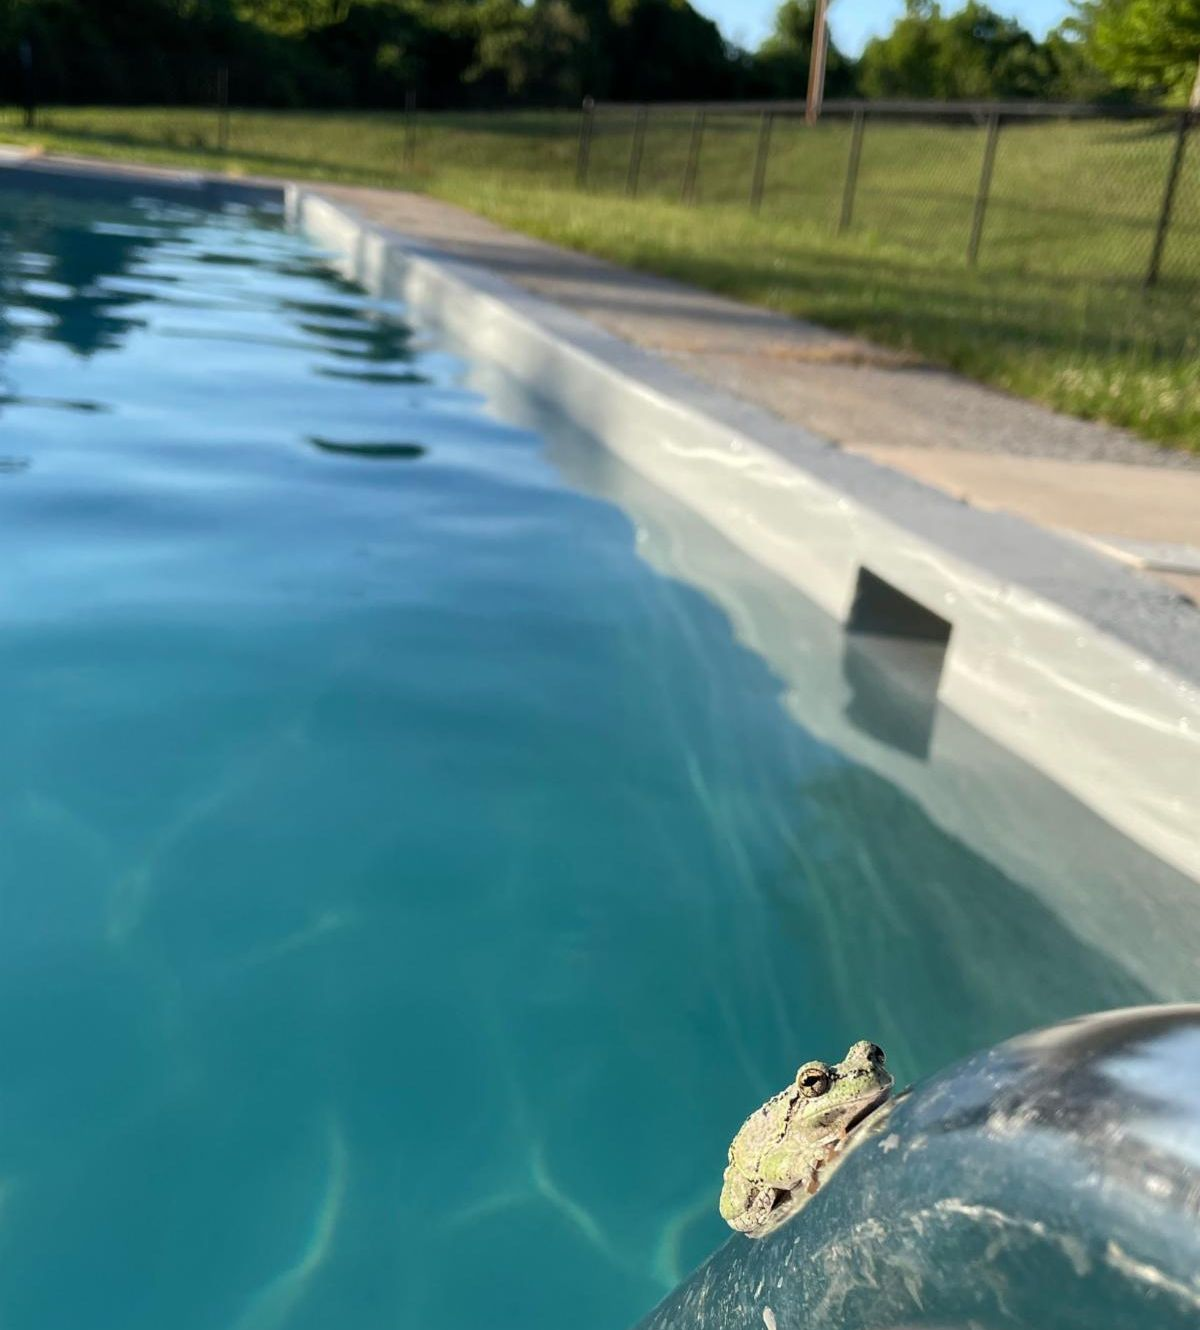 A frog sits on the rail of a pool ladder with blue water of the pool in the background.